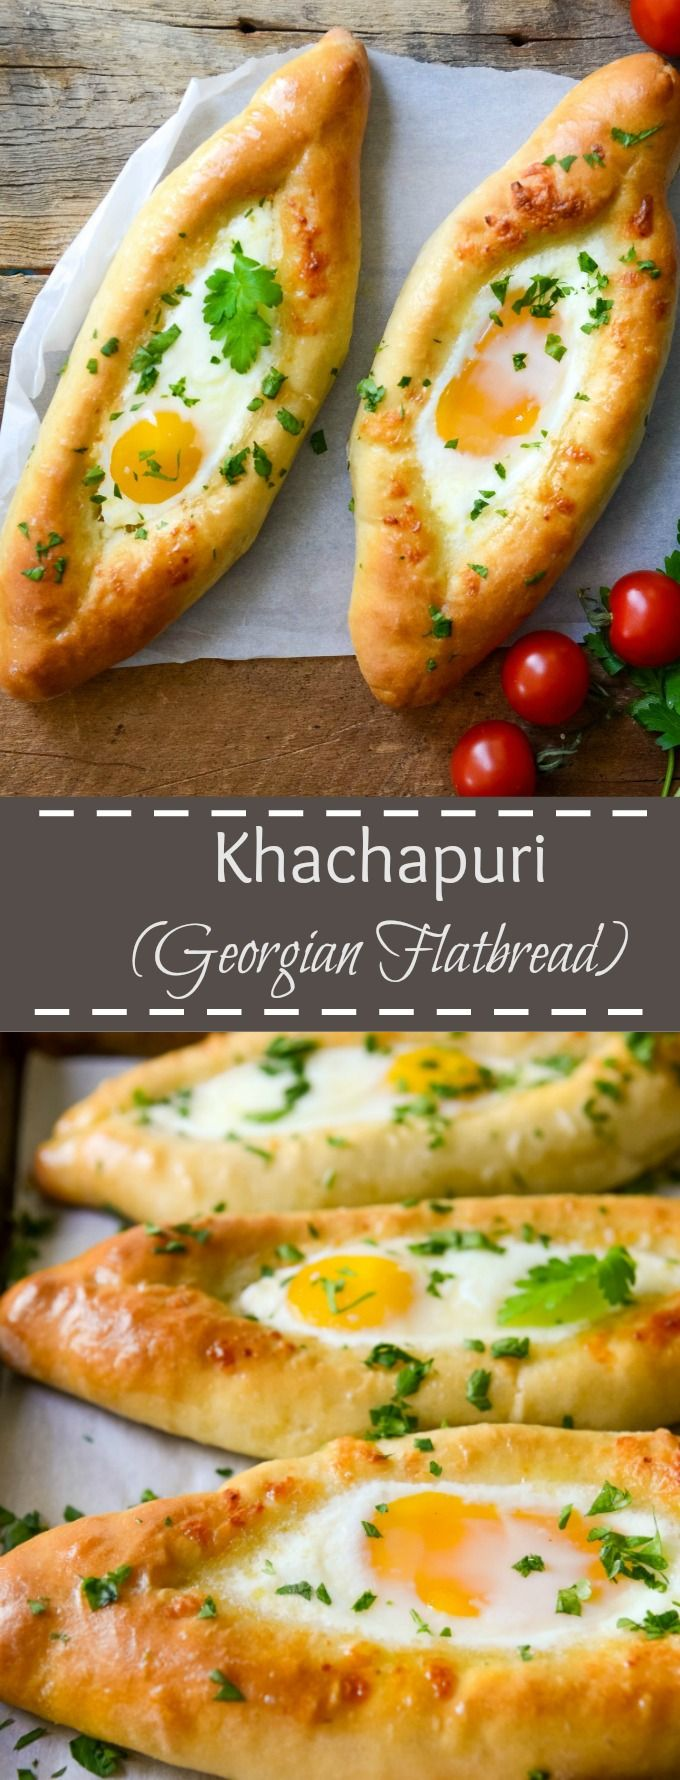 This Georgian Flatbread can be served as a side dish or as a vegetarian main dish with a side salad. Filled with a combination of creamy and delicious cheeses and topped with an egg, these Khachapuri are sure to please your family and friends. via @https://www.pinterest.com/lavenderandmcrn/